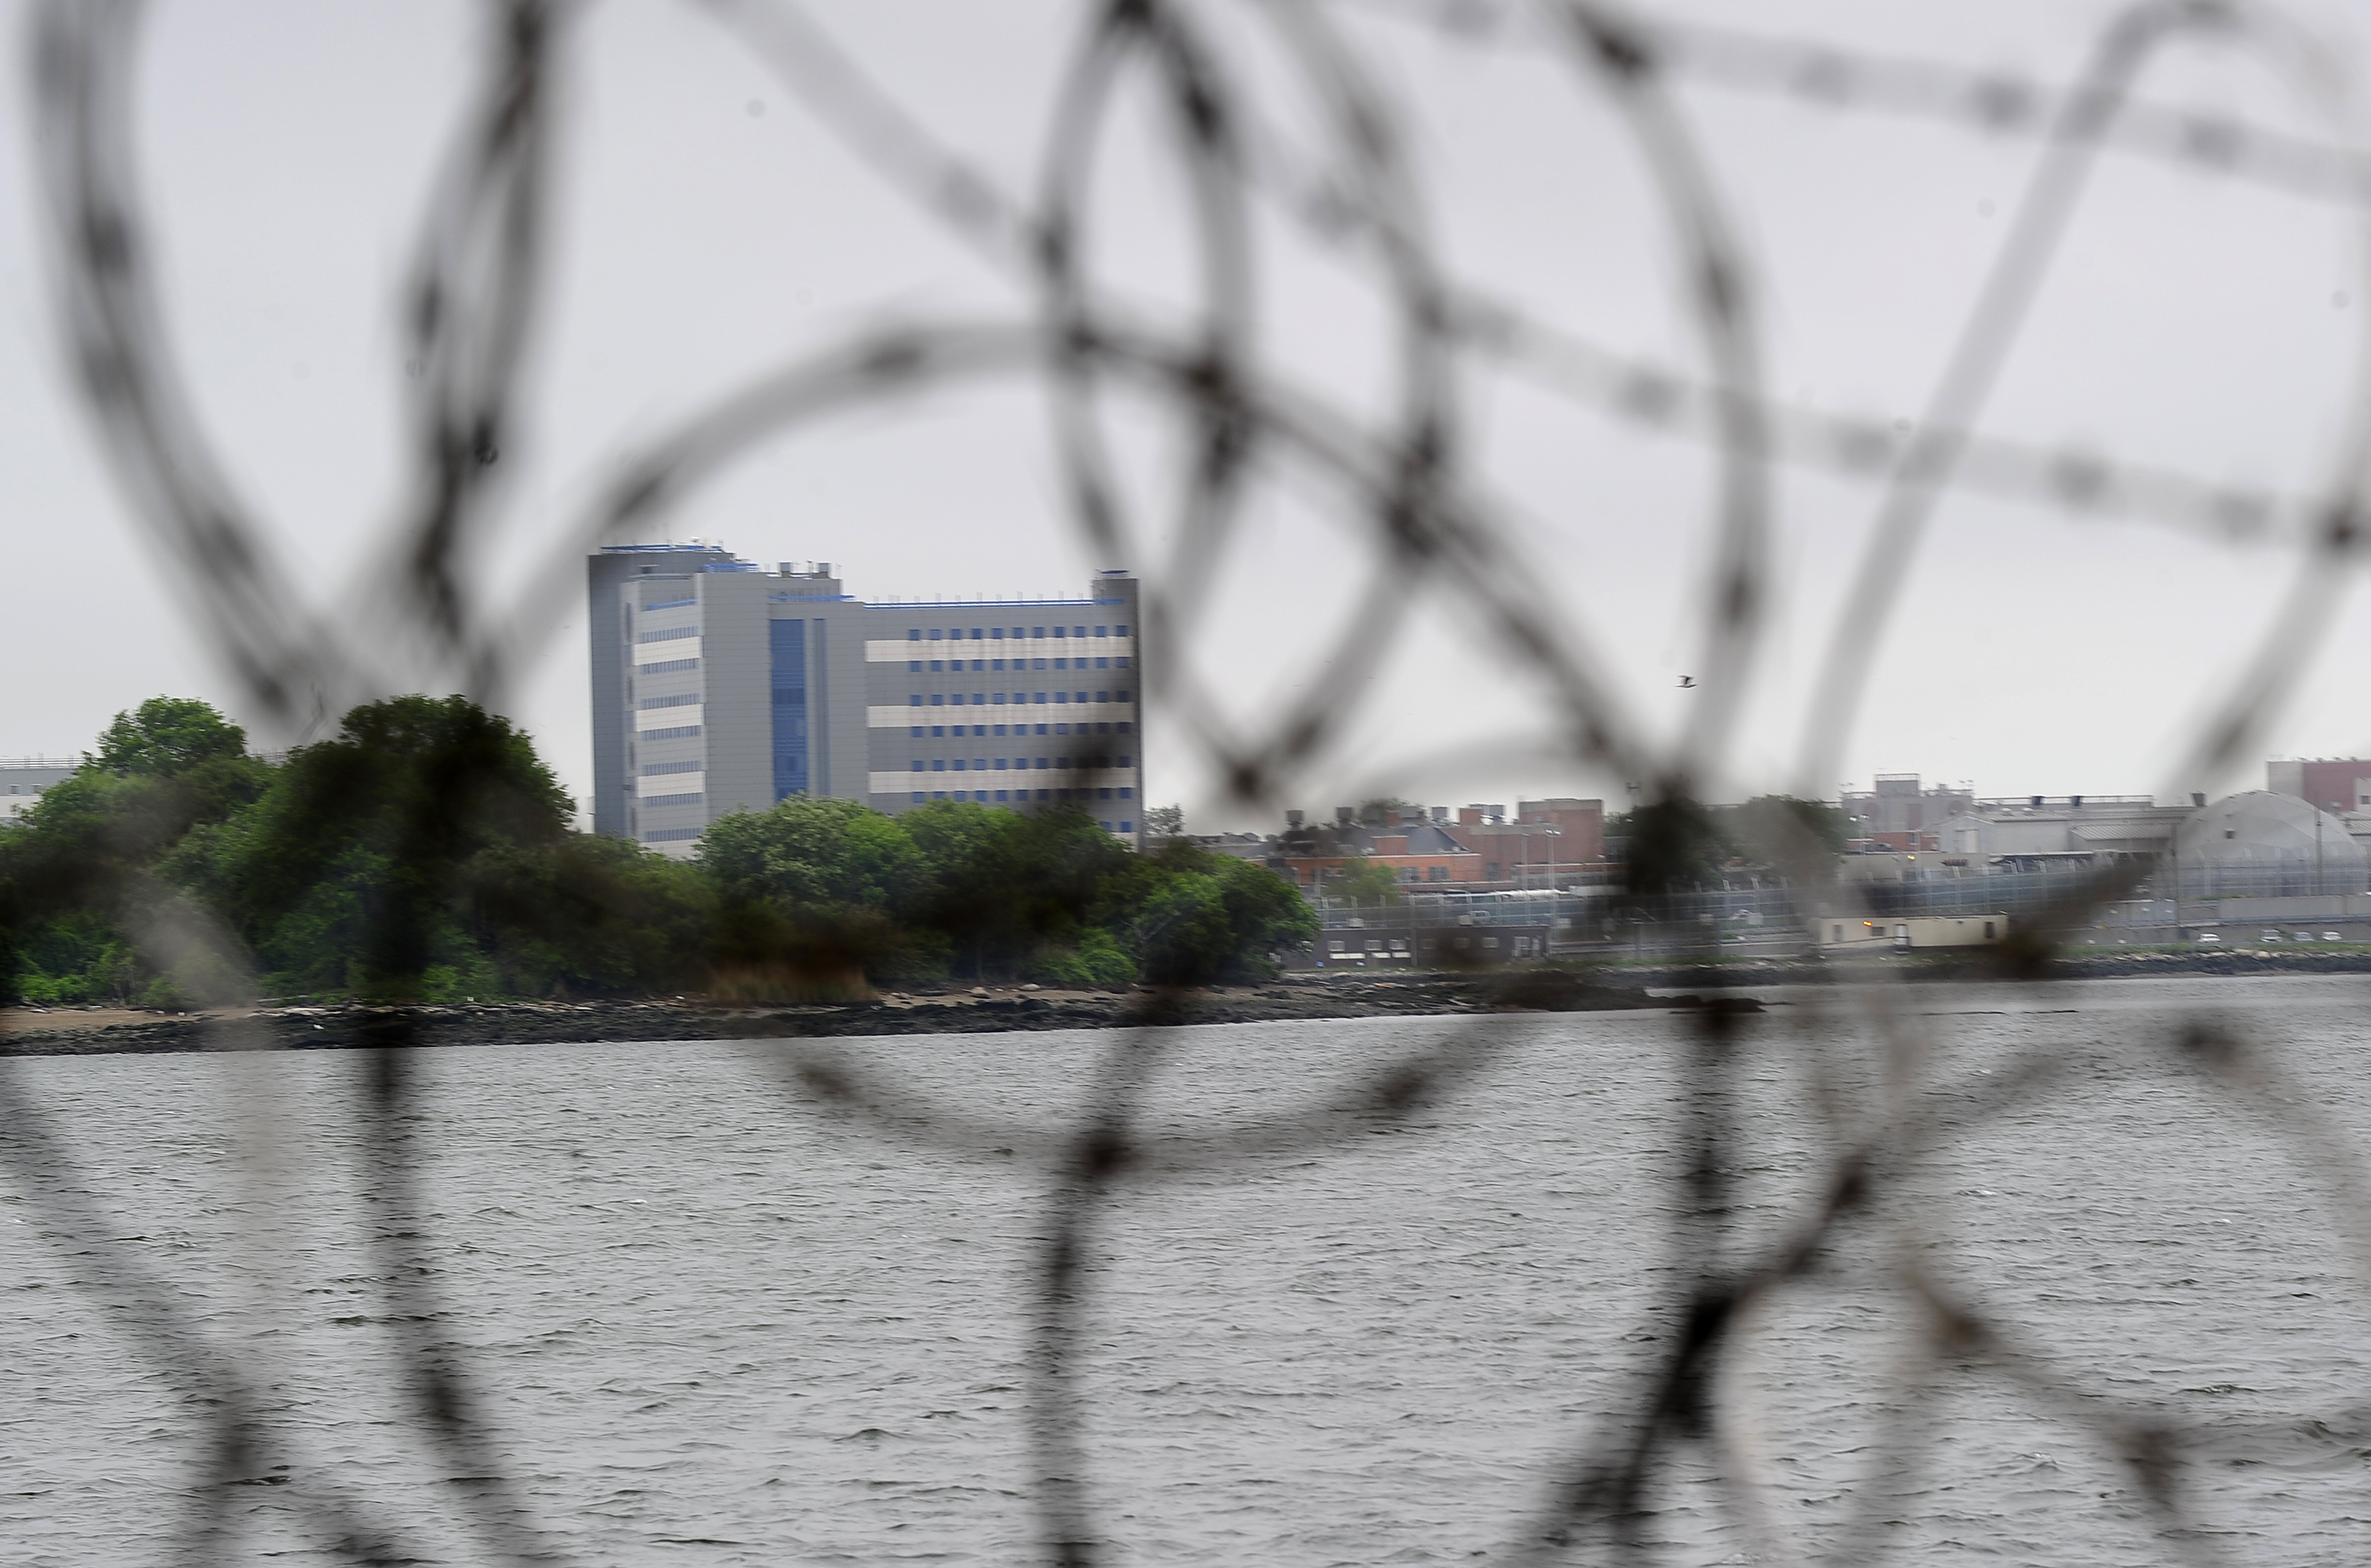 A view of buildings at the Rikers Island penitentiary complex on May 17, 2011.